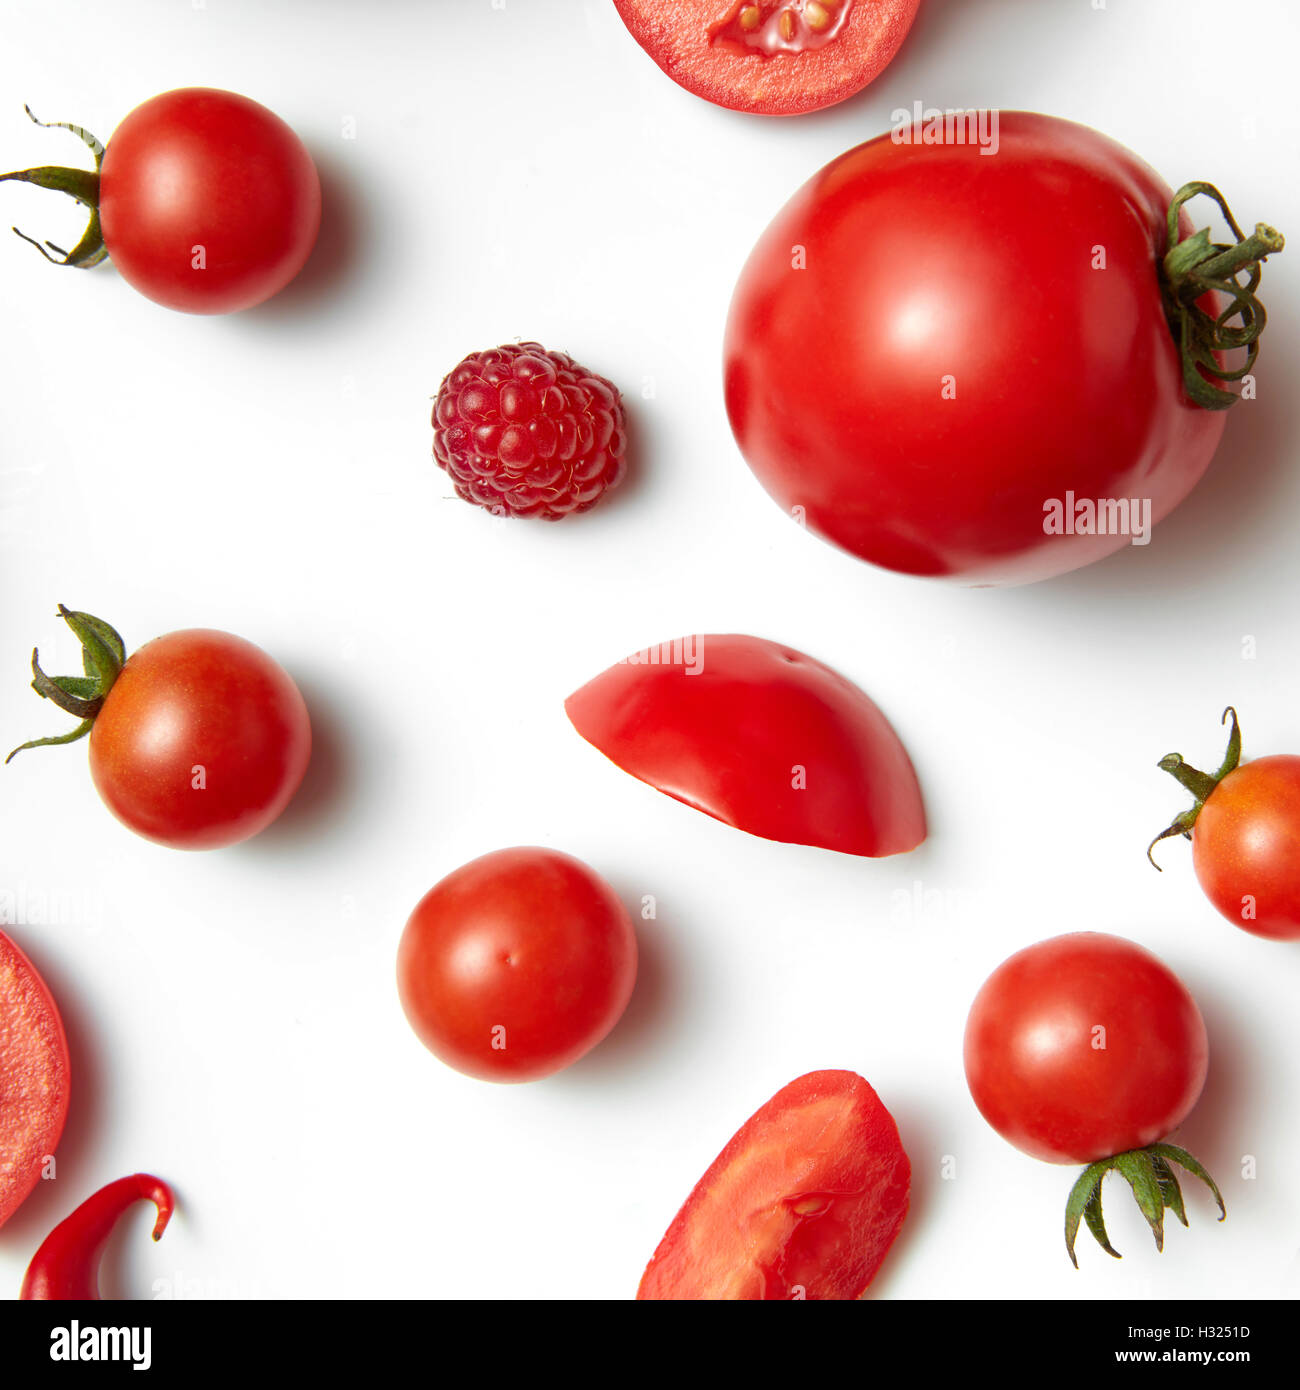 tomato cherry and raspberry isolated on white background - Stock Image